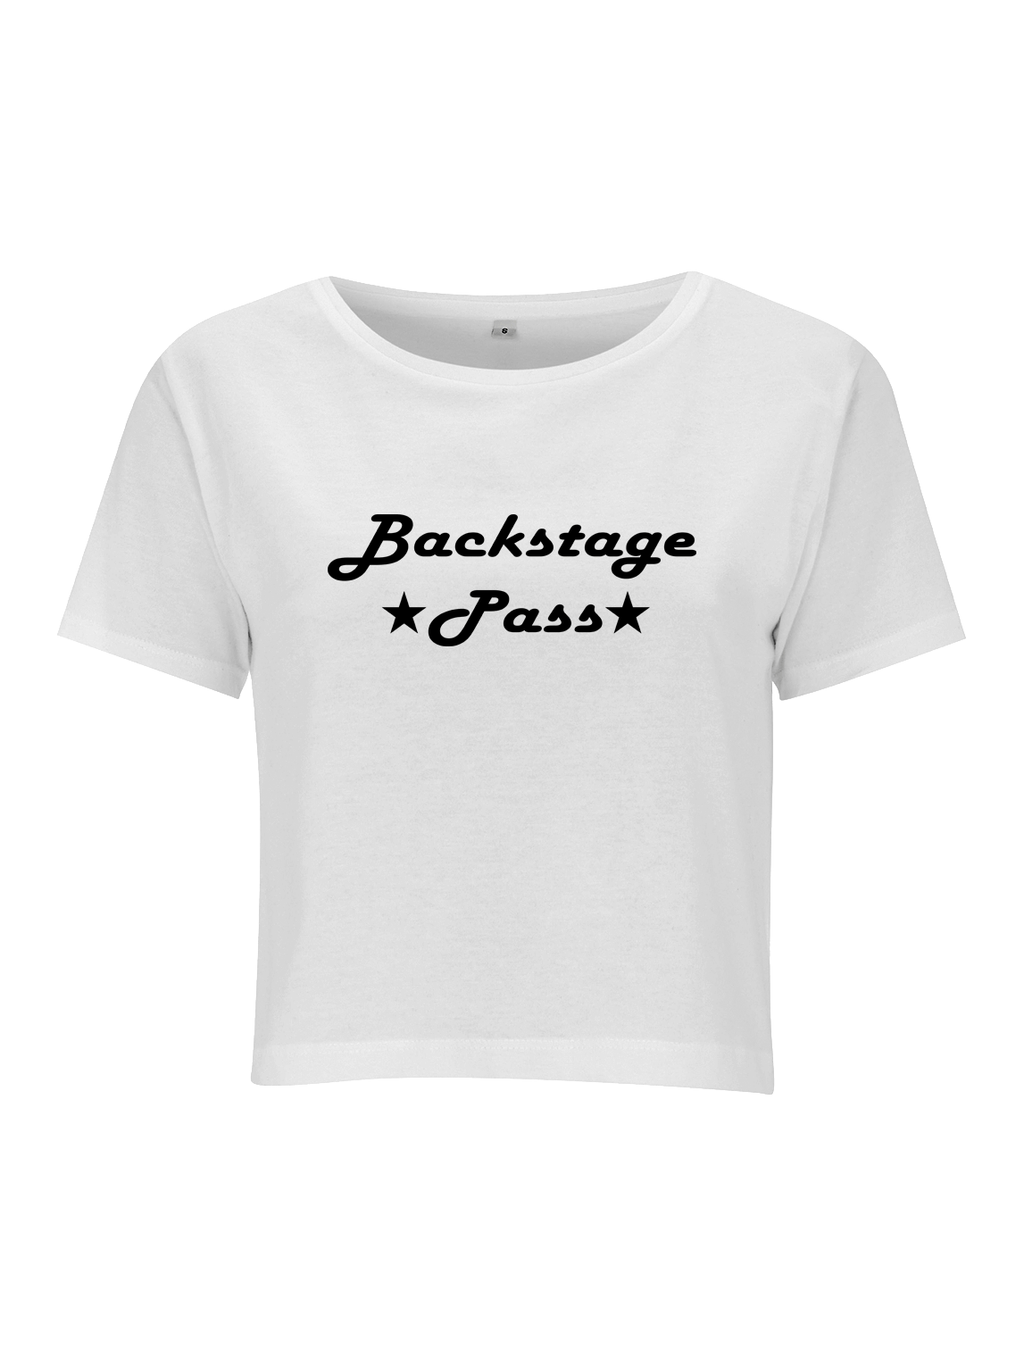 BACKSTAGE PASS crop top